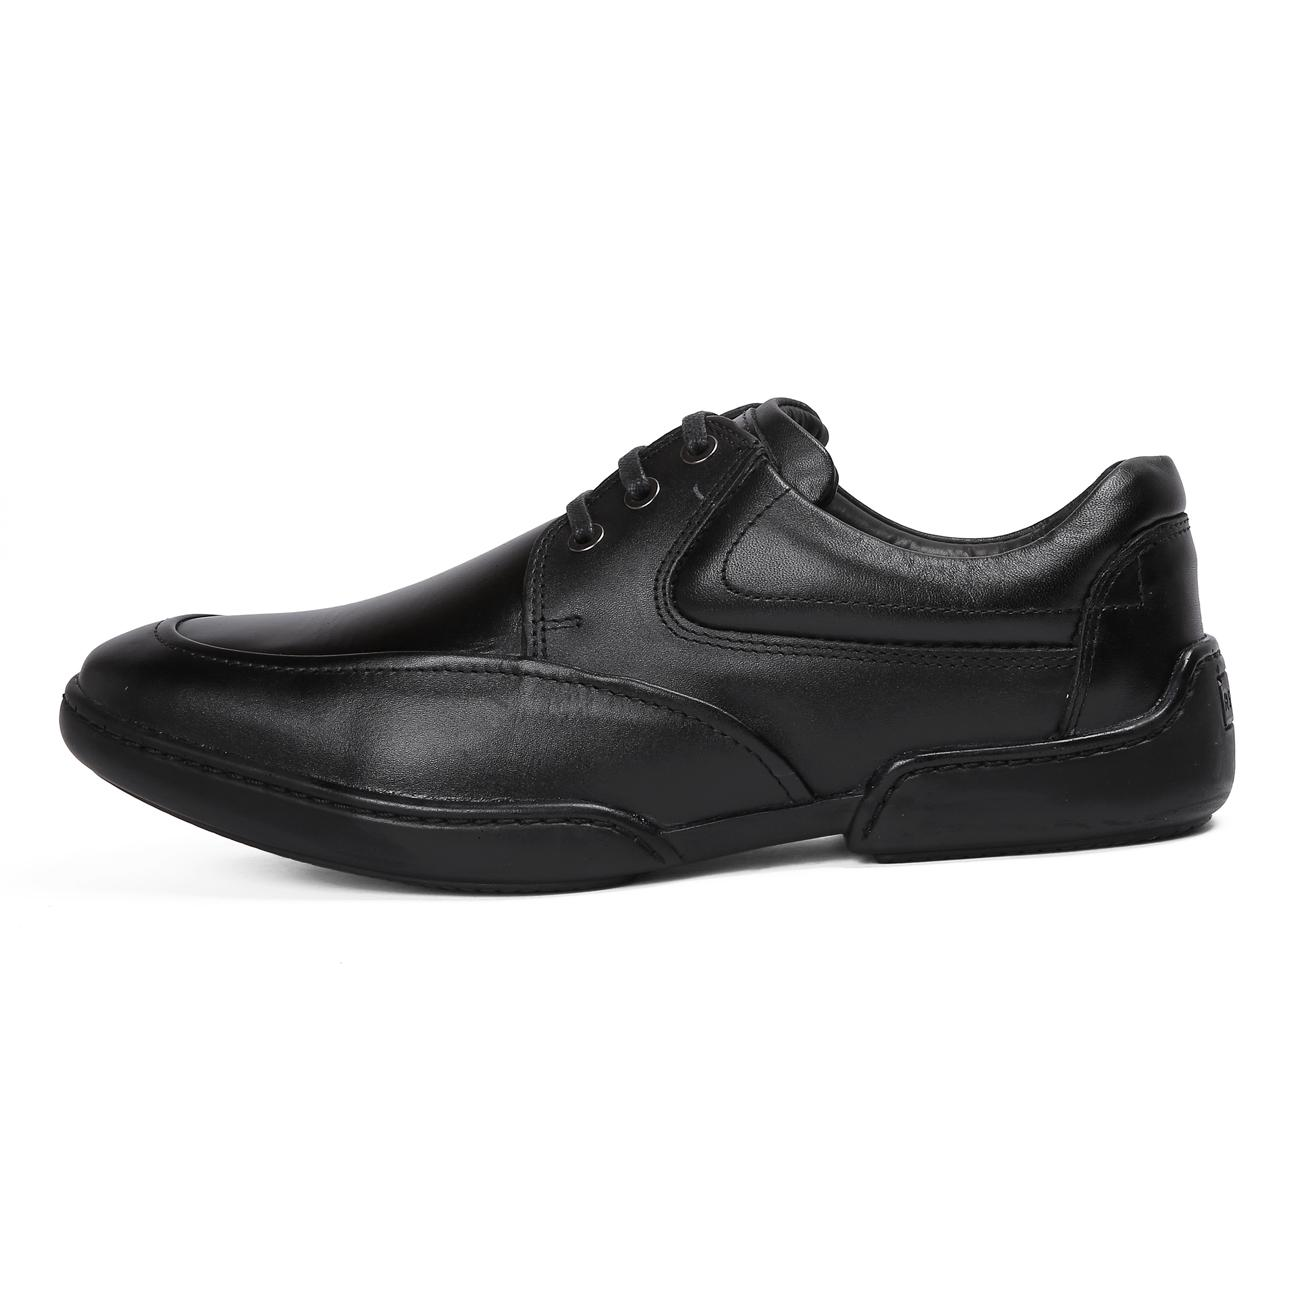 black casual leather shoes rubber sole